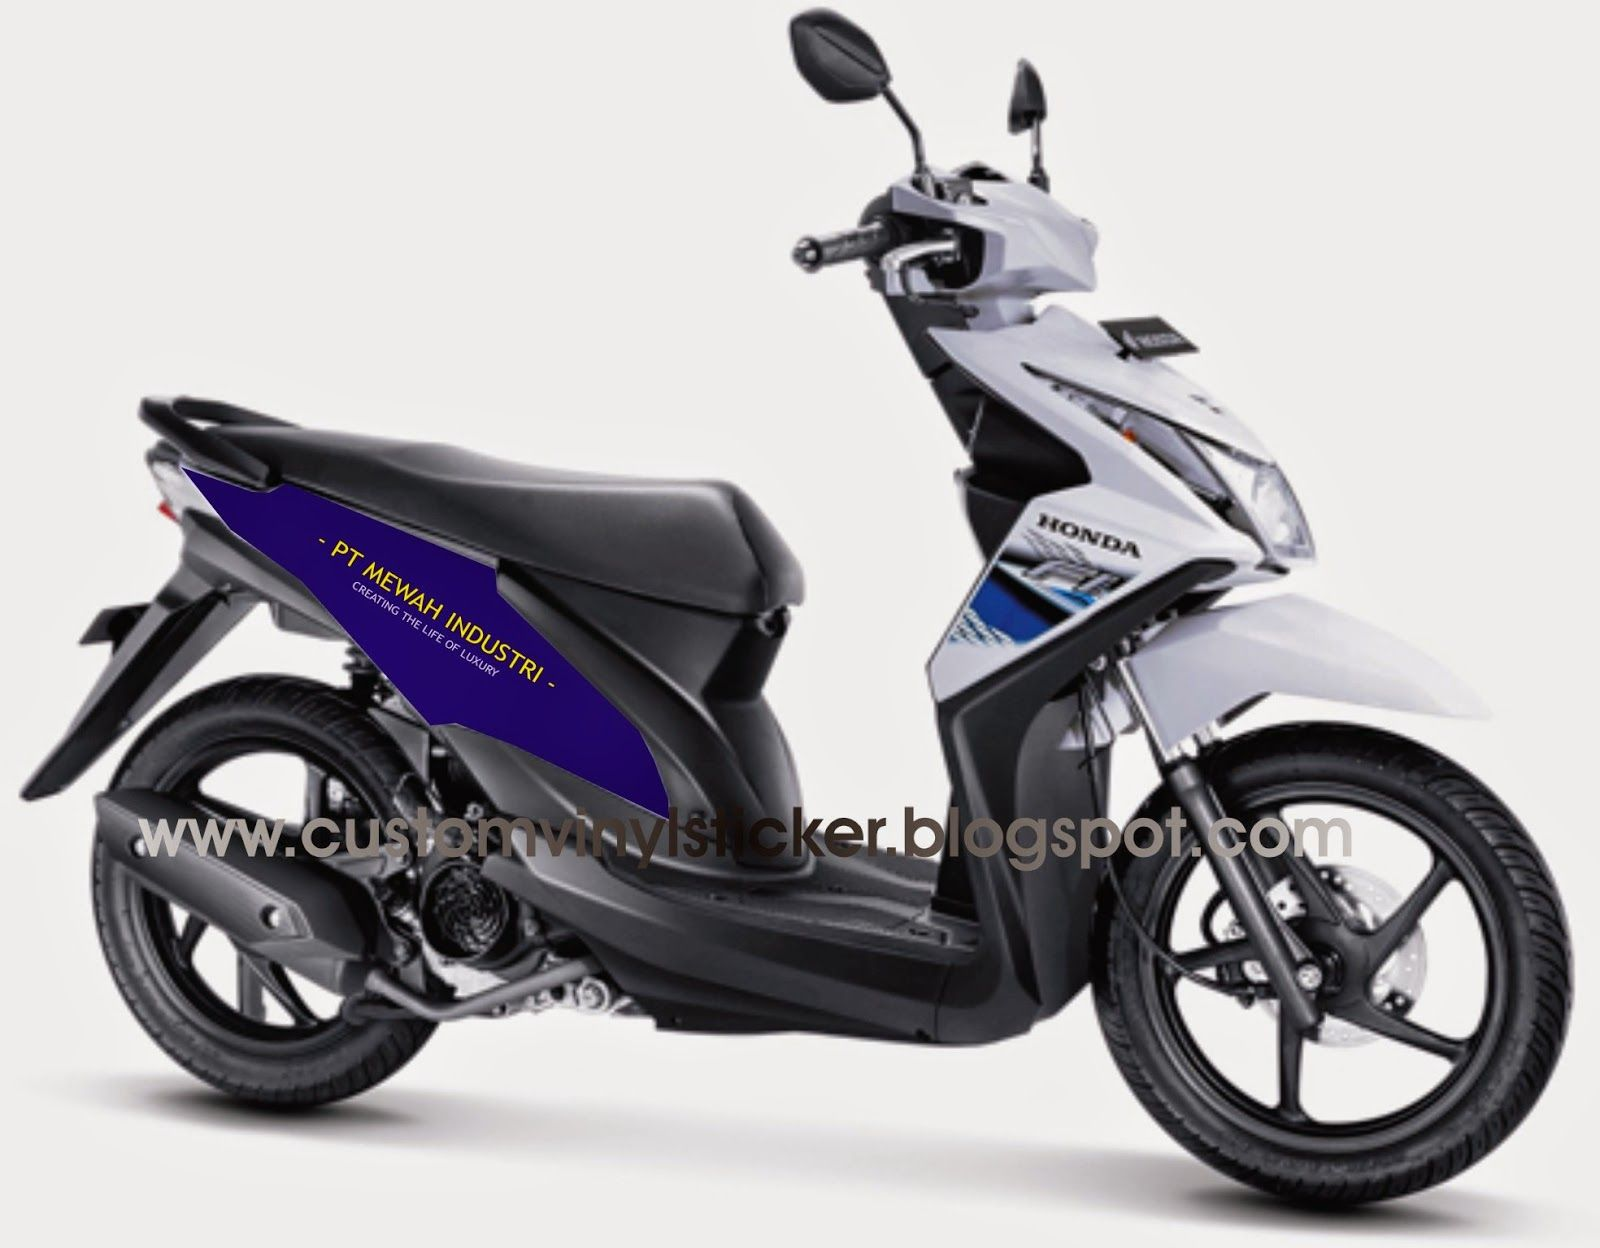 Honda Beat White Half Blue Wrapping Branding Concept Cutting Sonic 150r Racing Red Jakarta